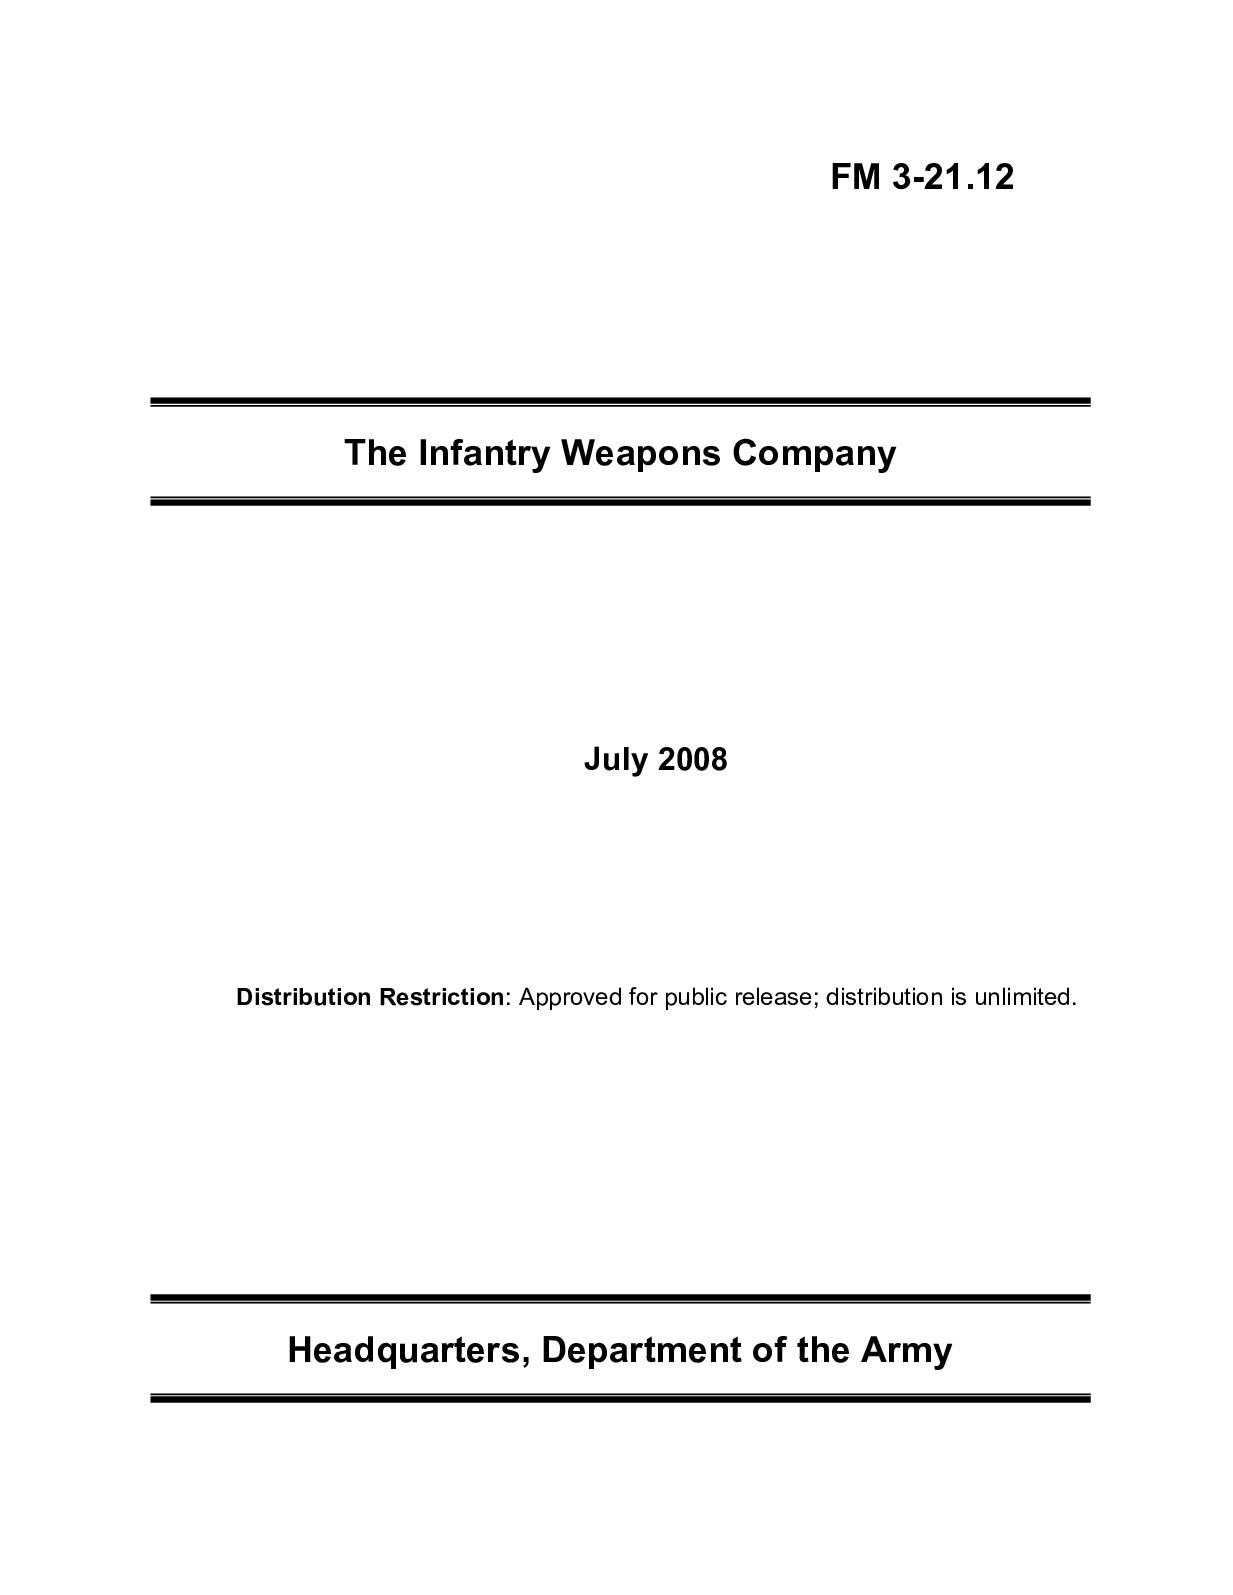 army tm manuals online